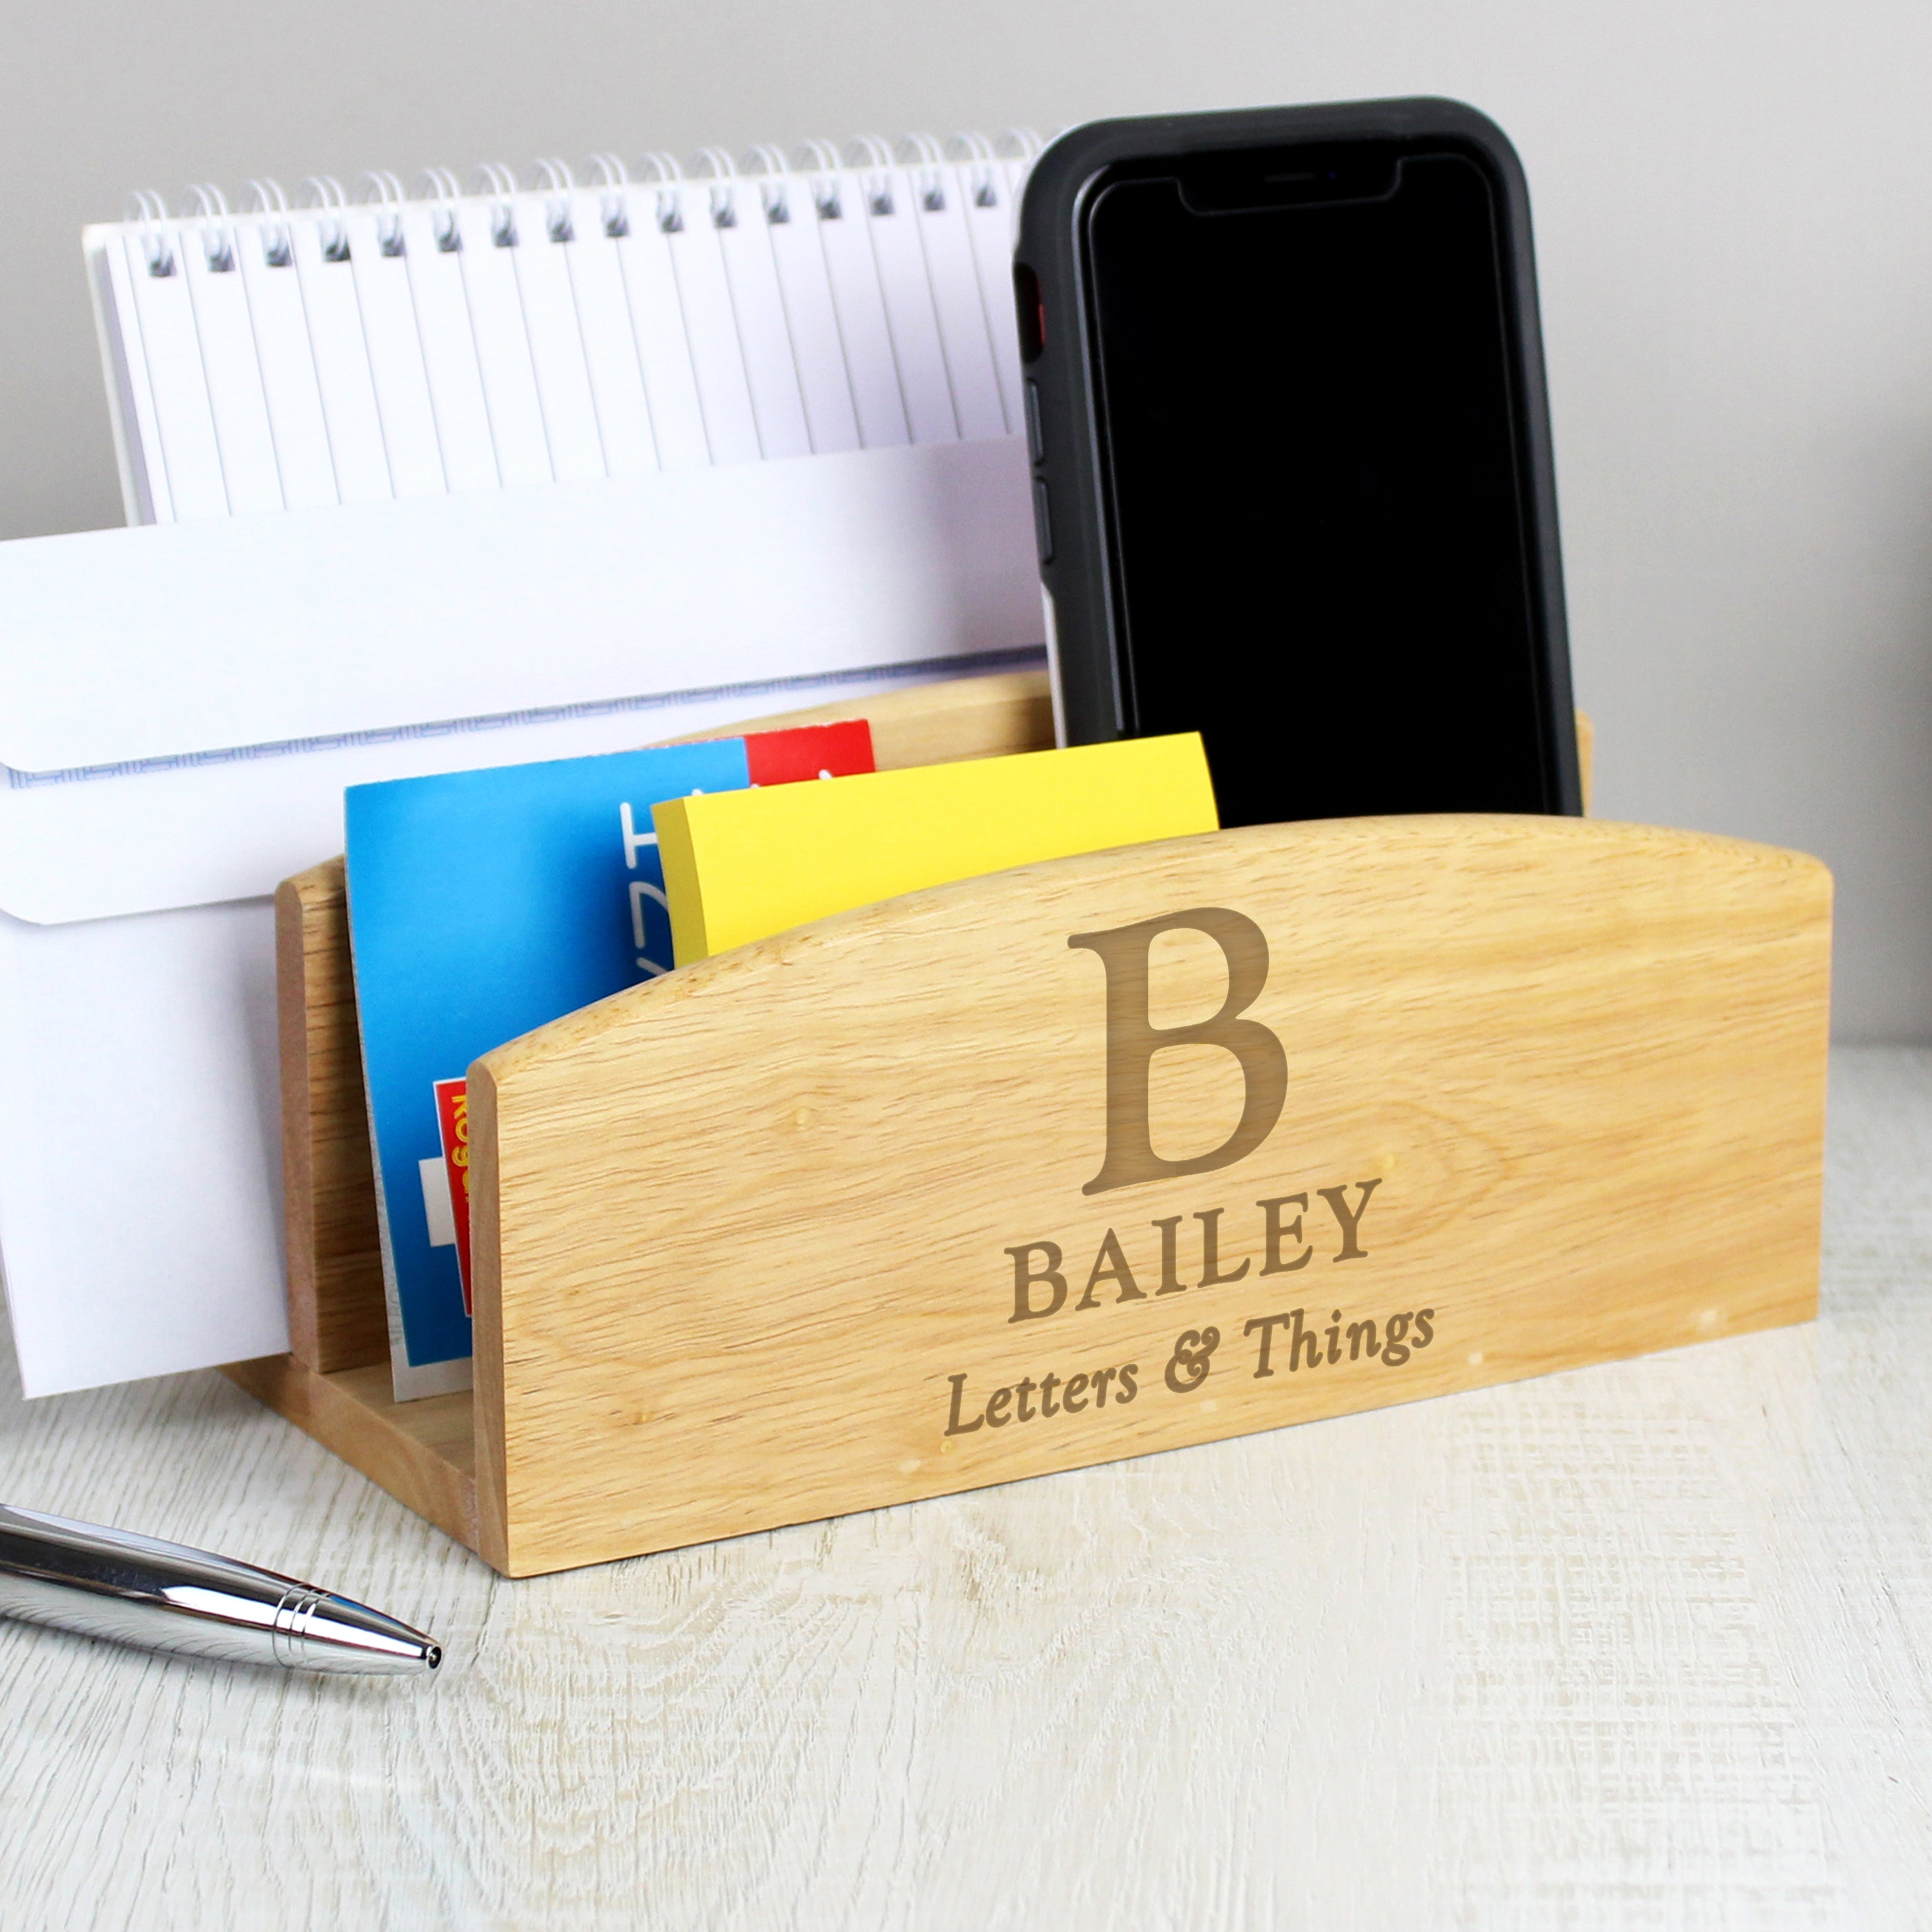 Personalised Initial & Message Wooden Letter Rack, Craft Shapes & Bases by Low Cost Gifts